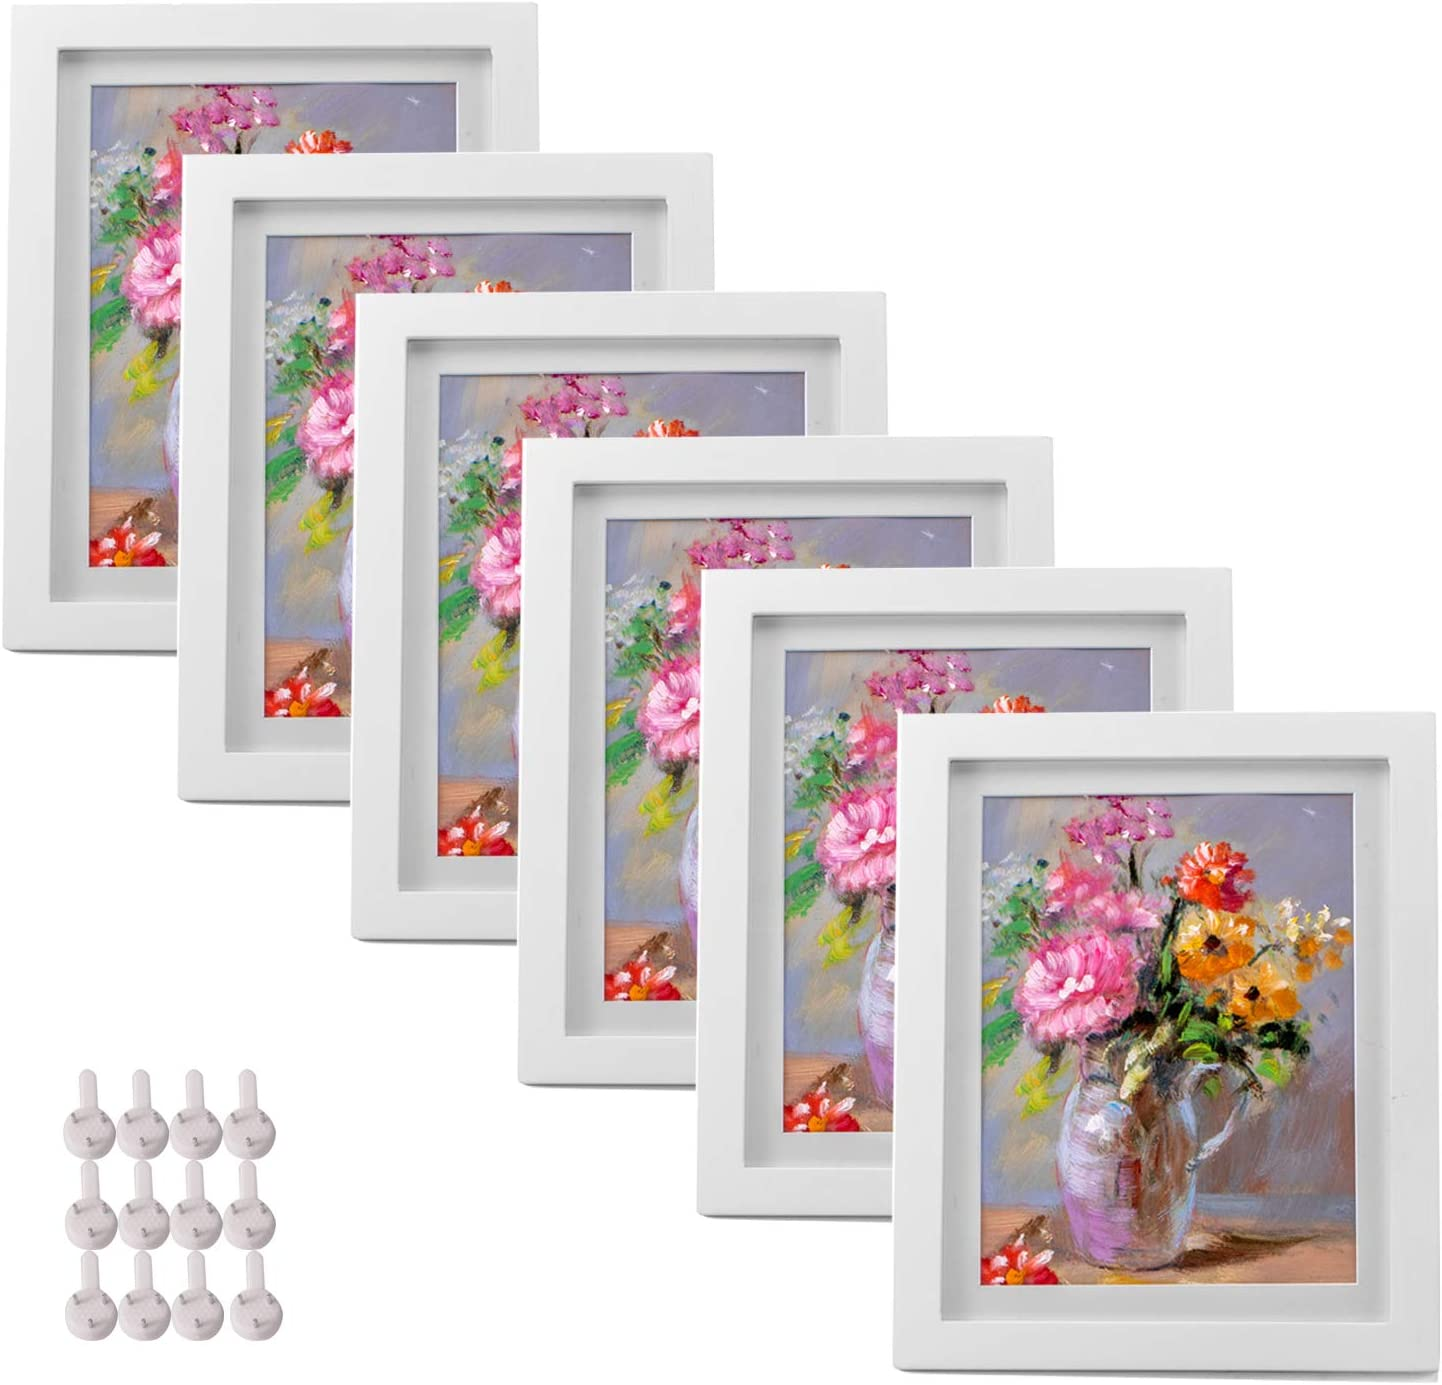 SUITUS 8X10 Photos Frames Set of 6, Display 7X9 Pictures with Mat or 8X10 Without Mat, Wall Gallery Frame Made of Solid Wood and HD Plexiglass, Display Pictures Frame for Table Top and Wall Mounting (White)